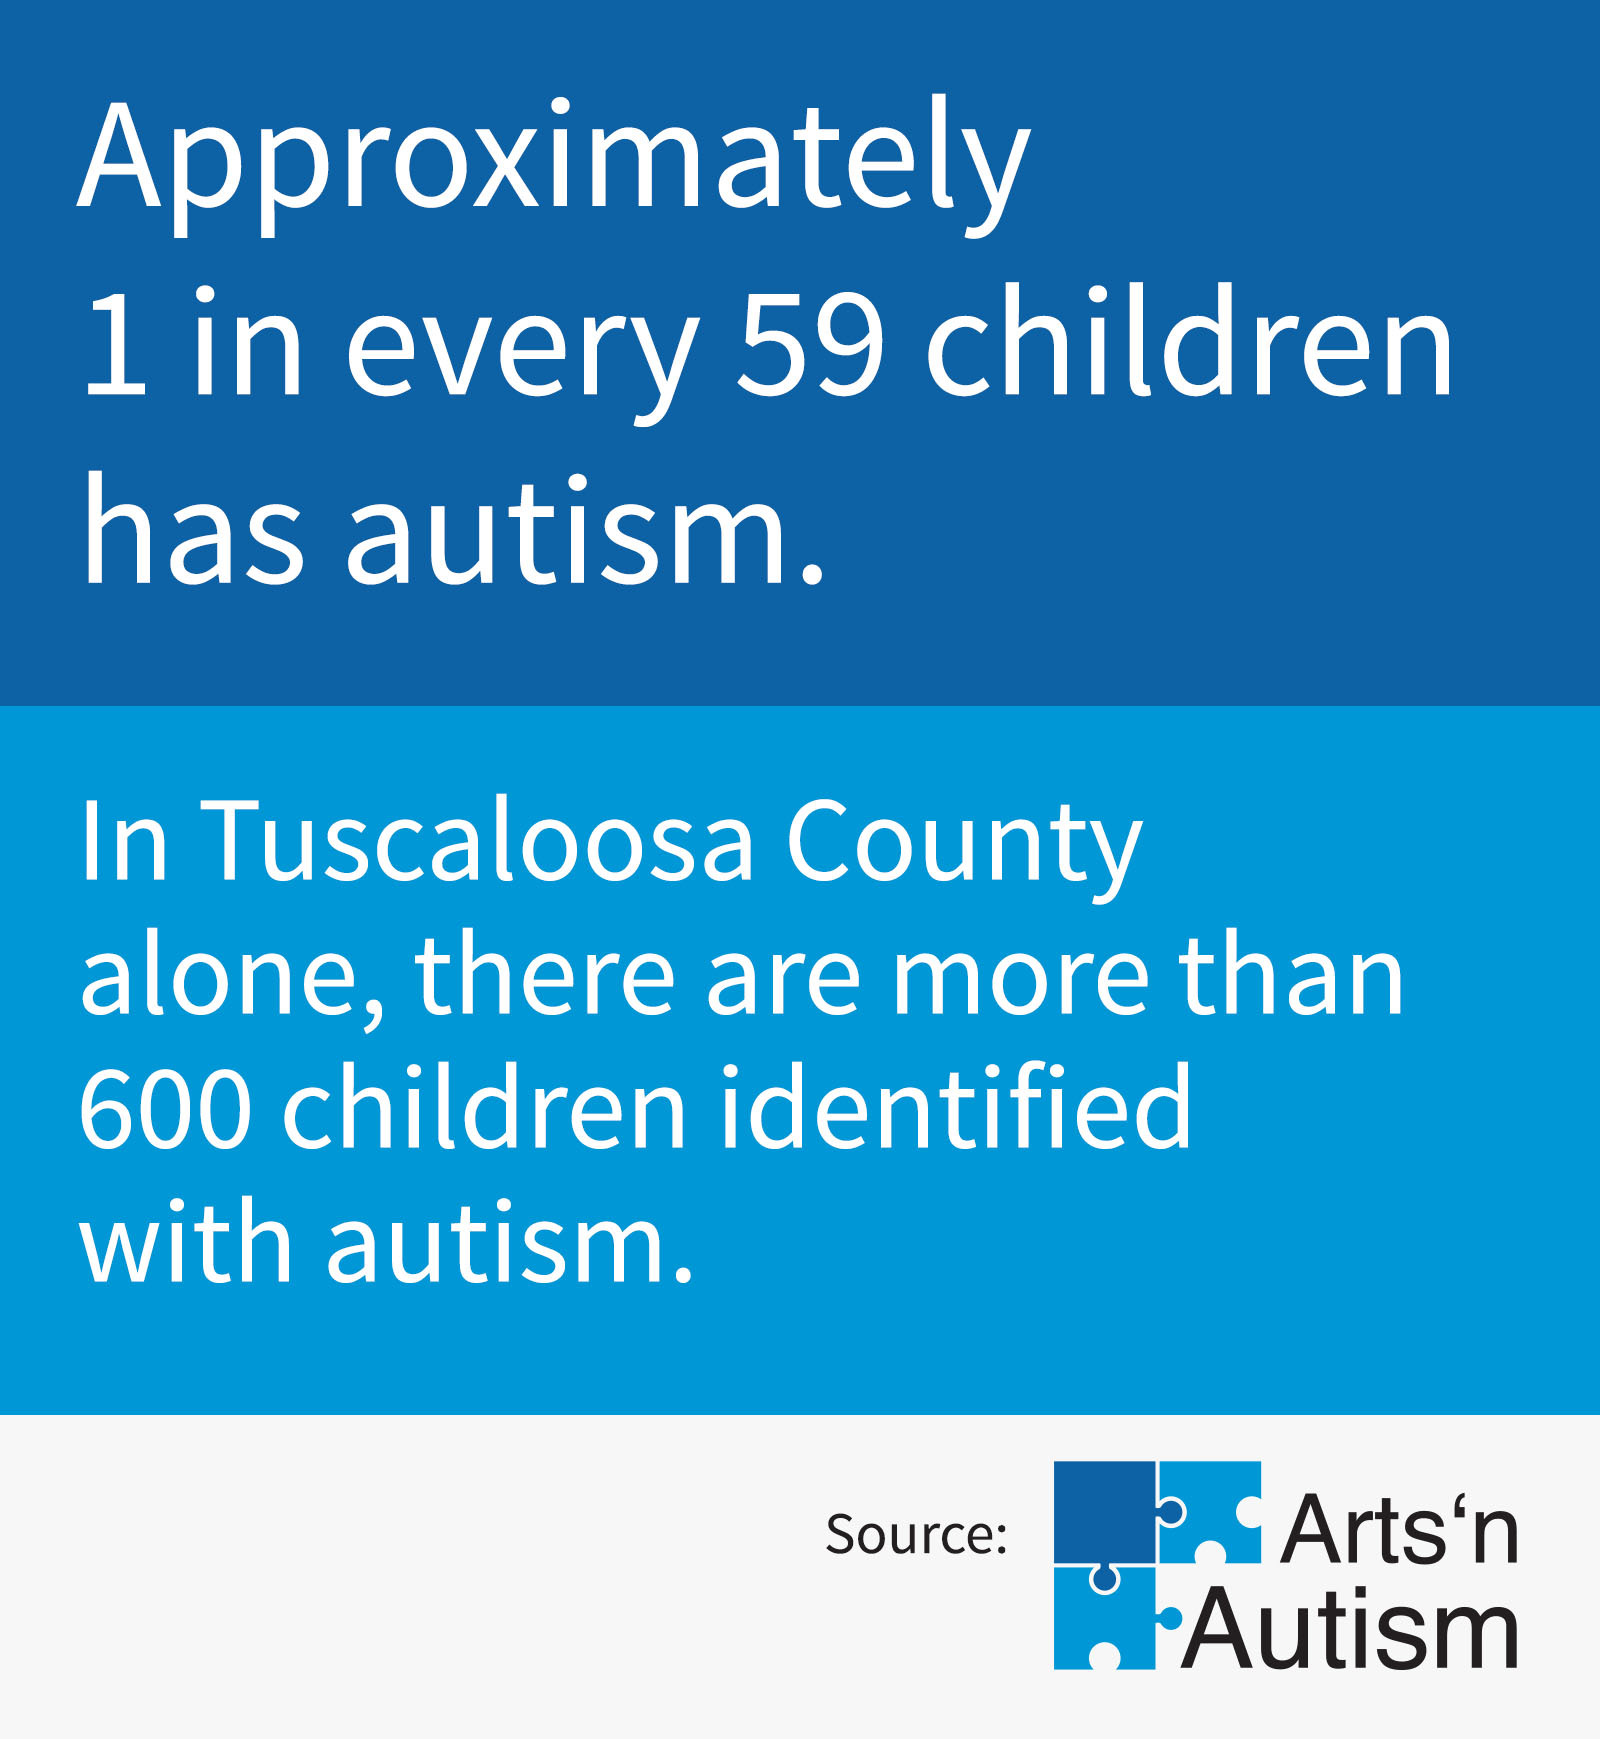 Approximately 1 in every 59 children has autism.